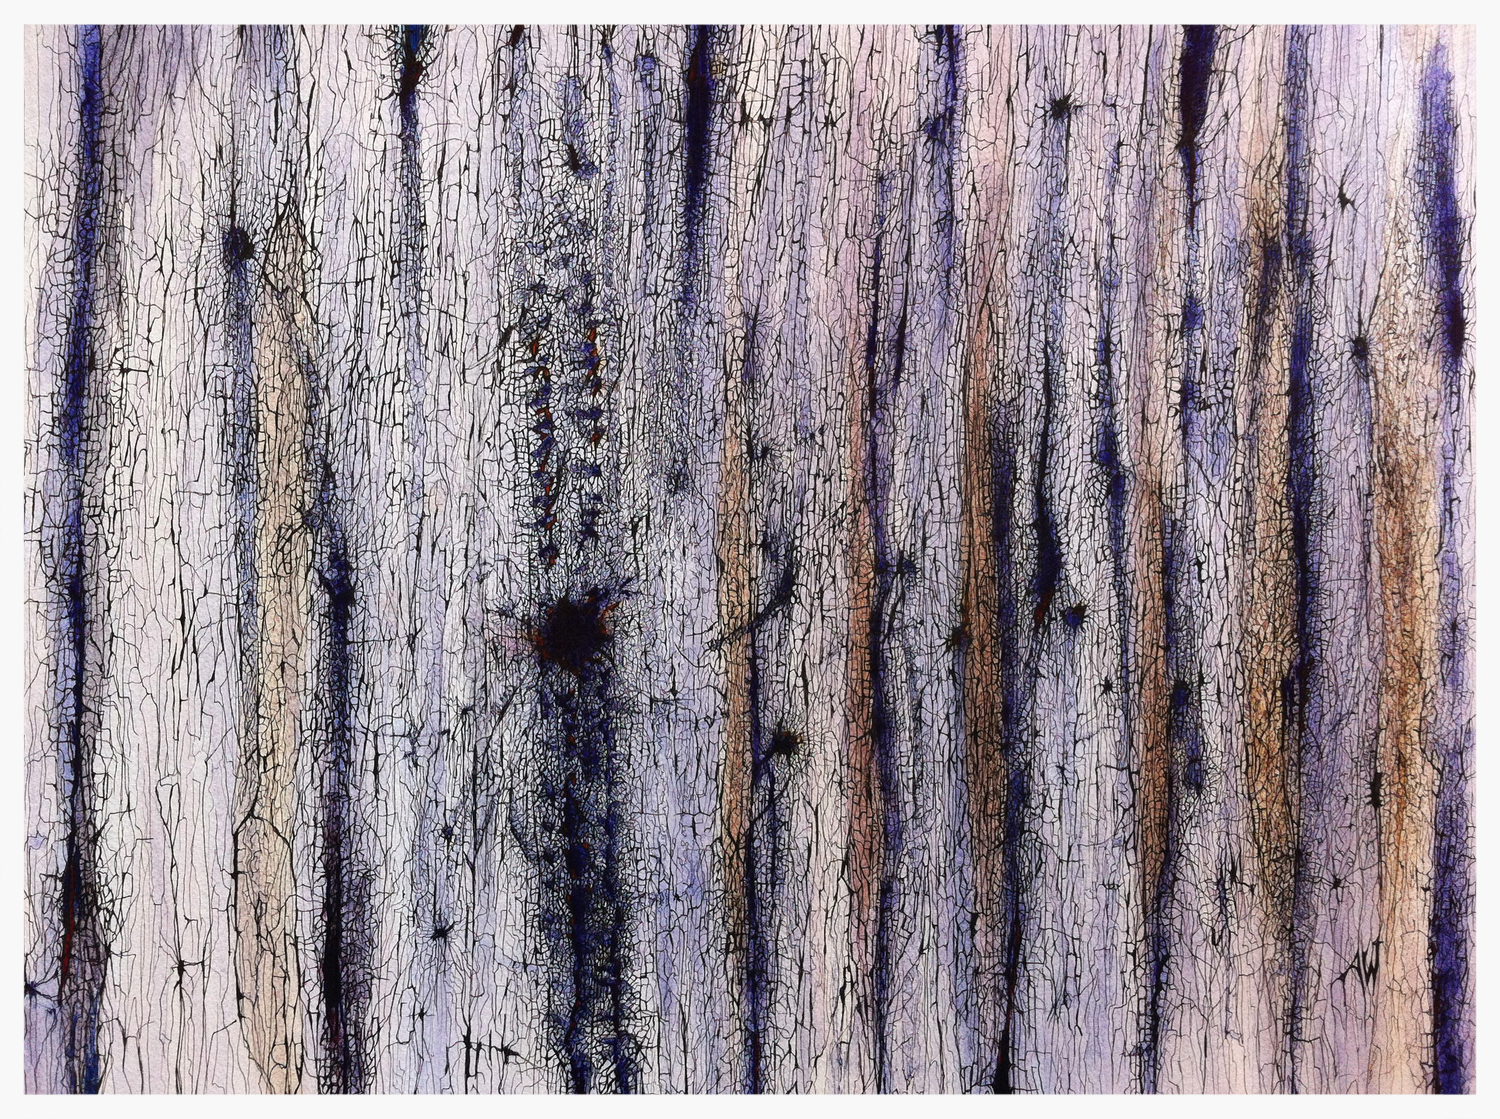 BARK CAMBIUM - CAMBIUM STUDY IN BLUE    Ink on paper    © ANTHONY WIGGLESWORTH 2014